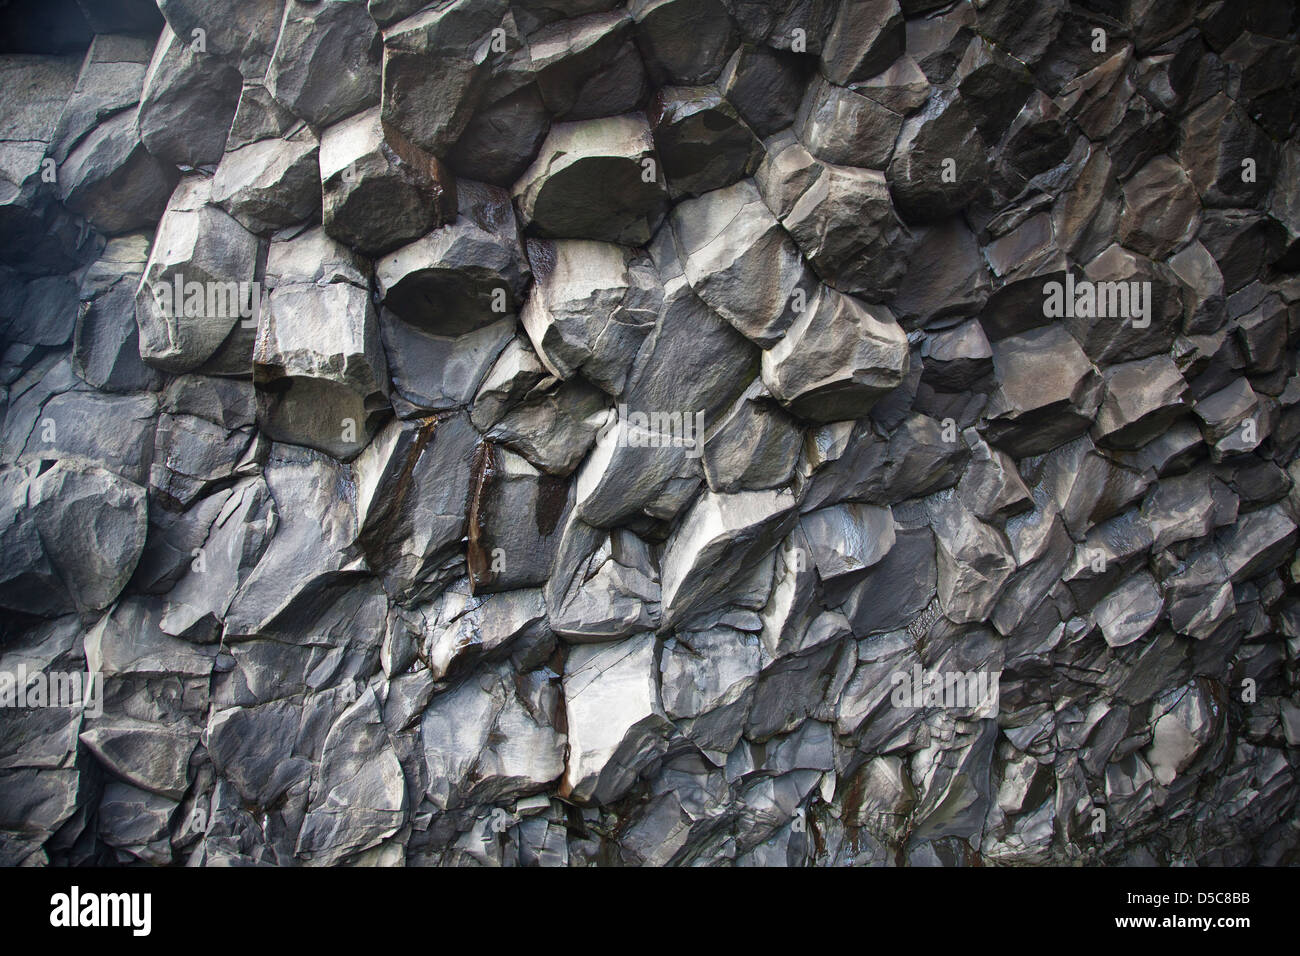 Hexagonal and pentagonal basaltic columns are the remains of old volcanic activity in Reynisfjara in southern Iceland. - Stock Image